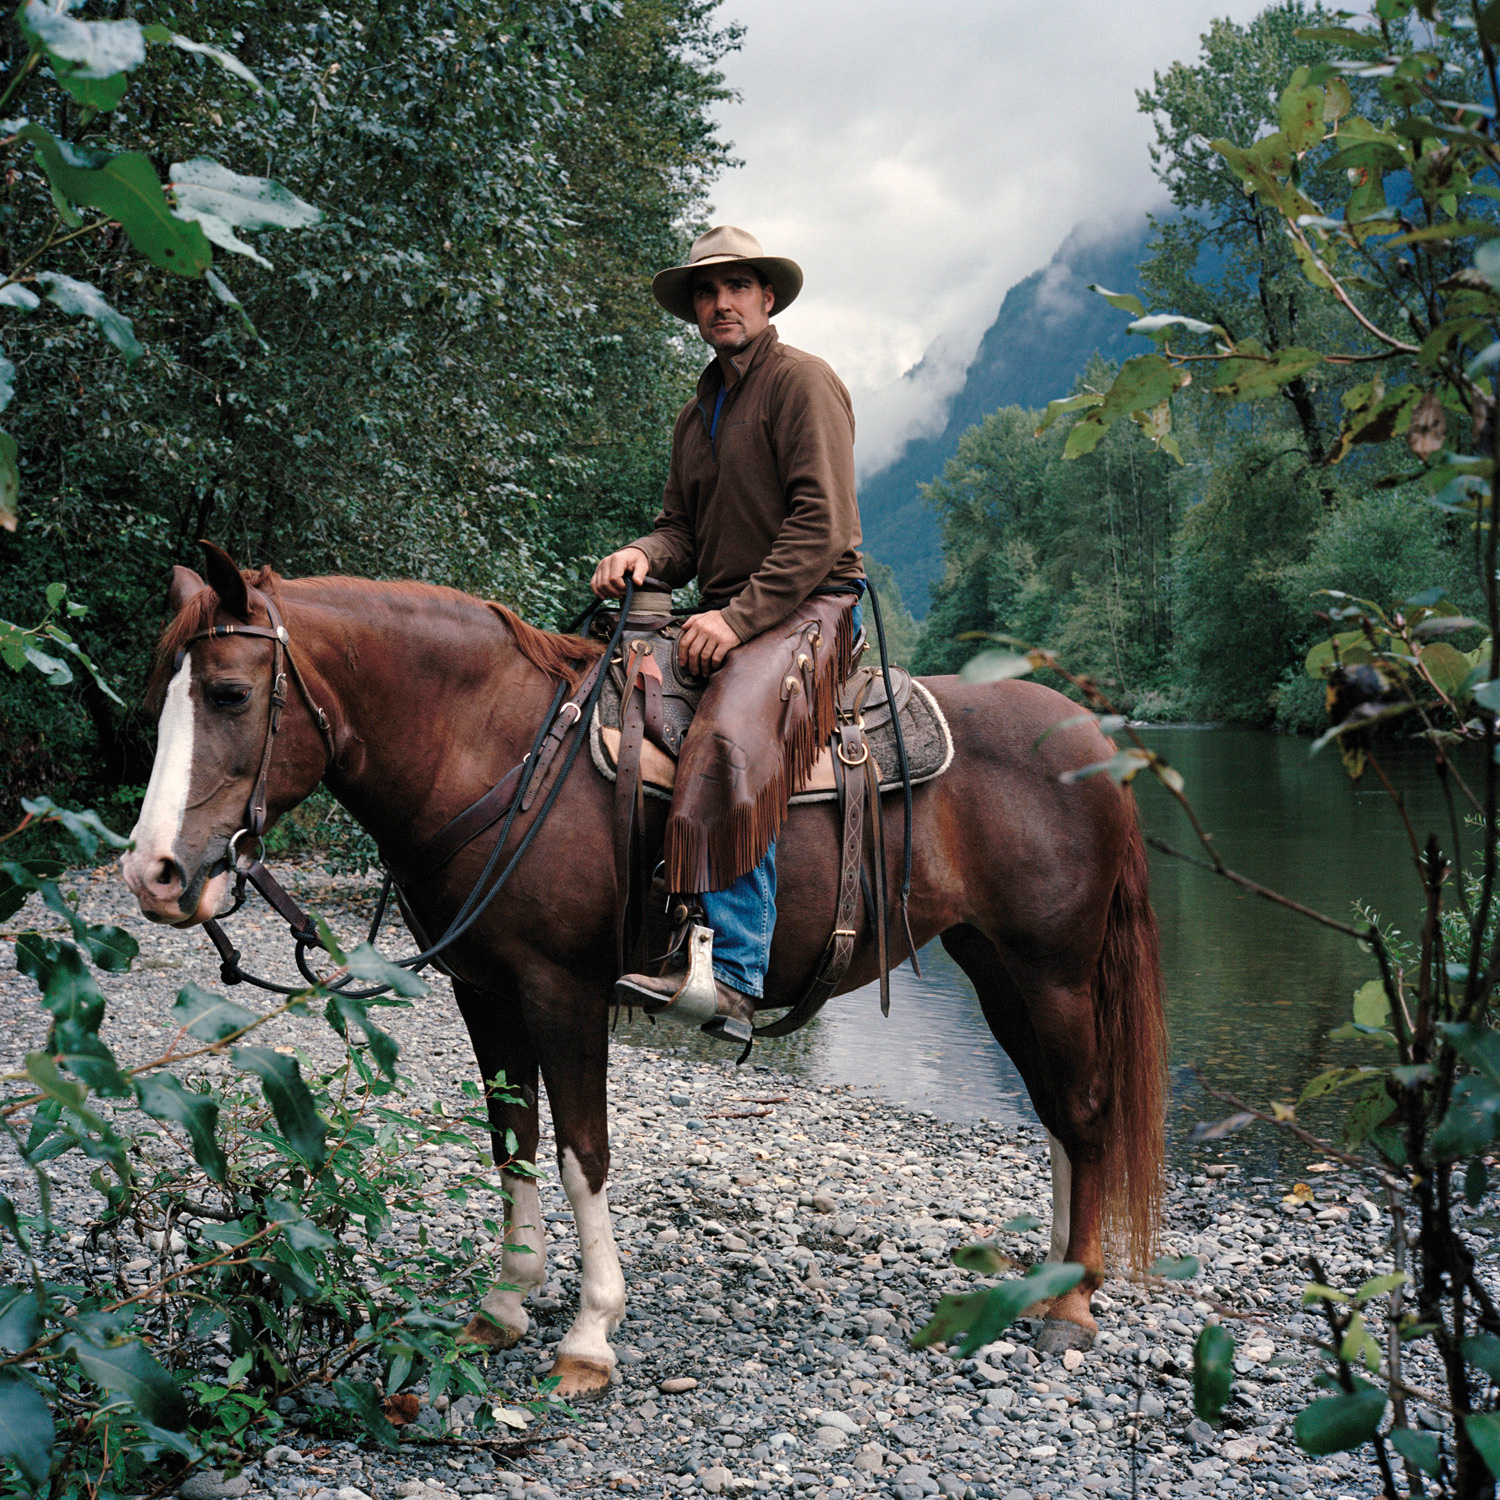 Man sitting on brown horse in brown cowboy outfit, behind him a lake and green trees and mountain